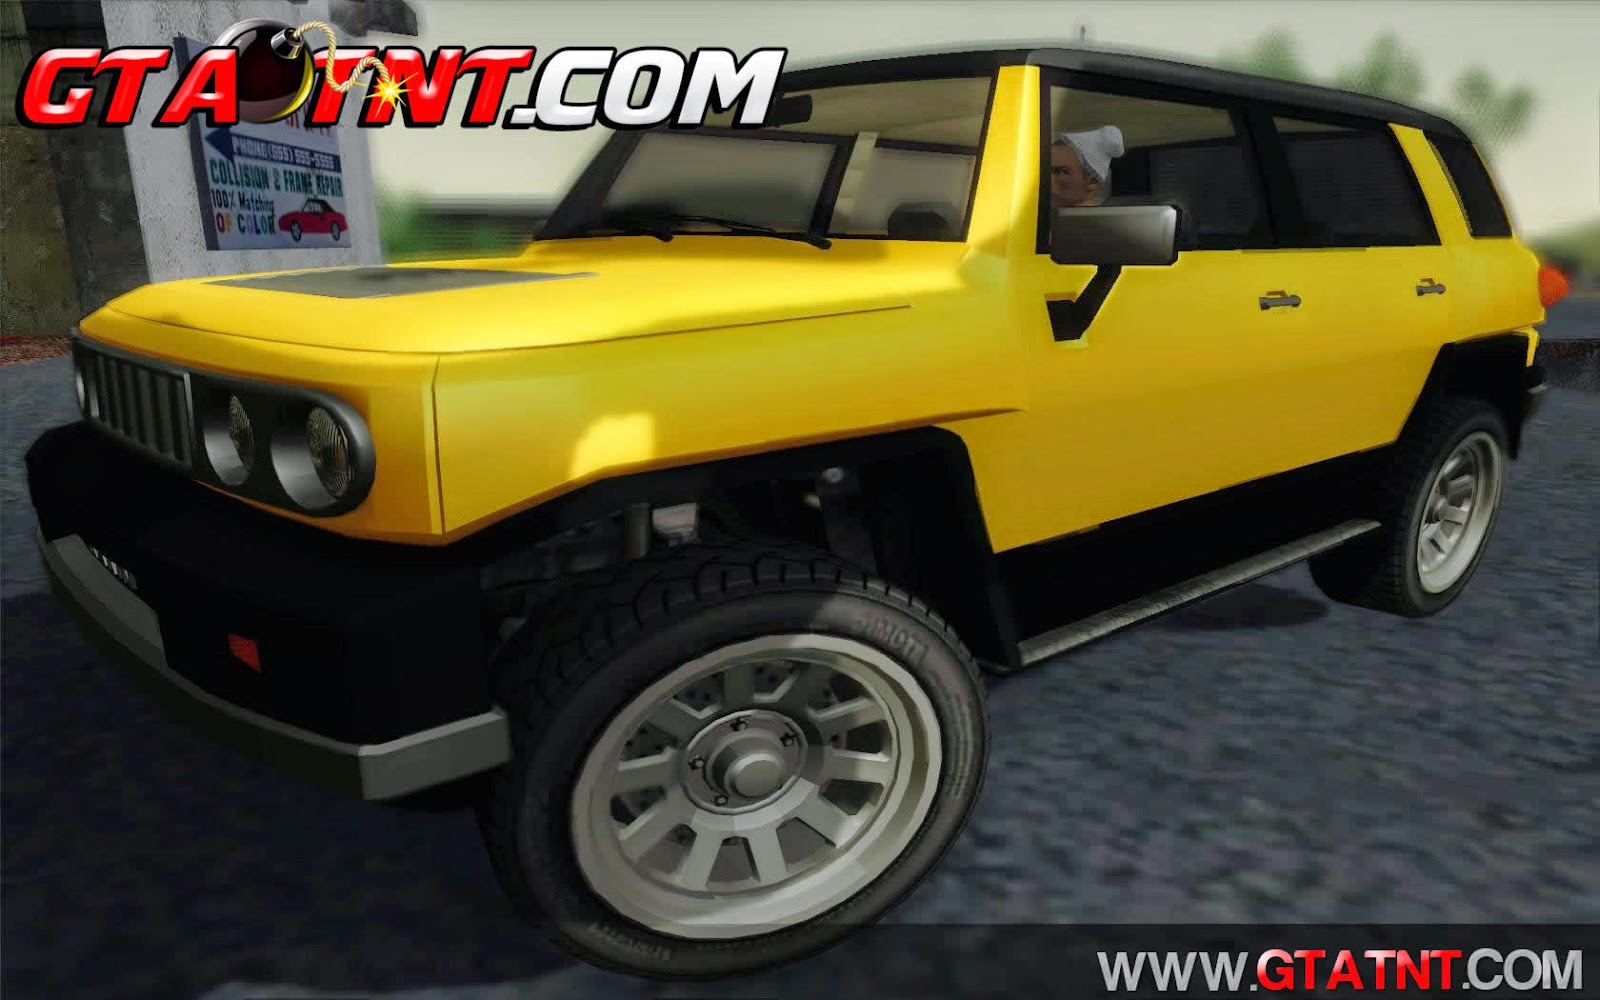 Karin BJ XL Convertido do GTA V para GTA San Andreas